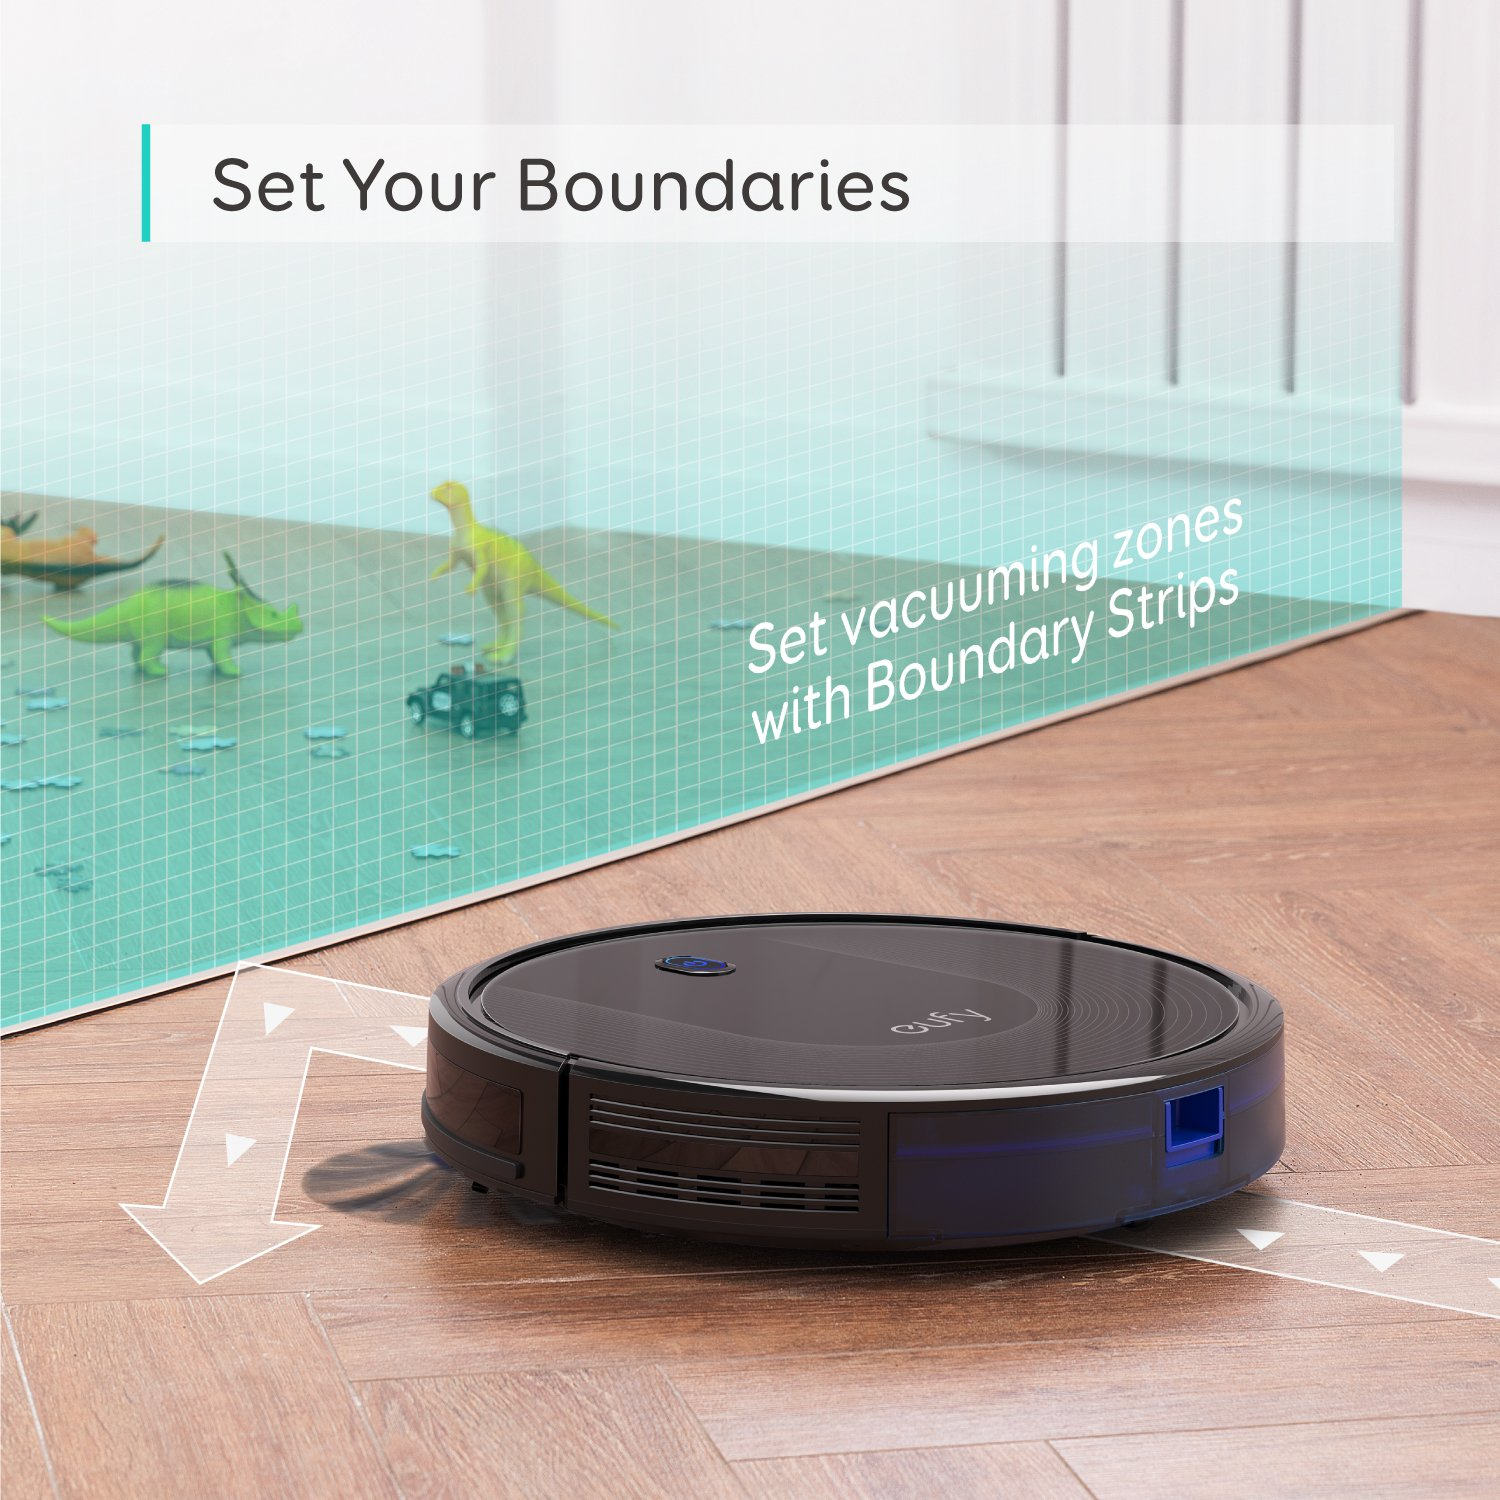 Amazon.com: eufy BoostIQ RoboVac 30, superfino, fuerza de ...